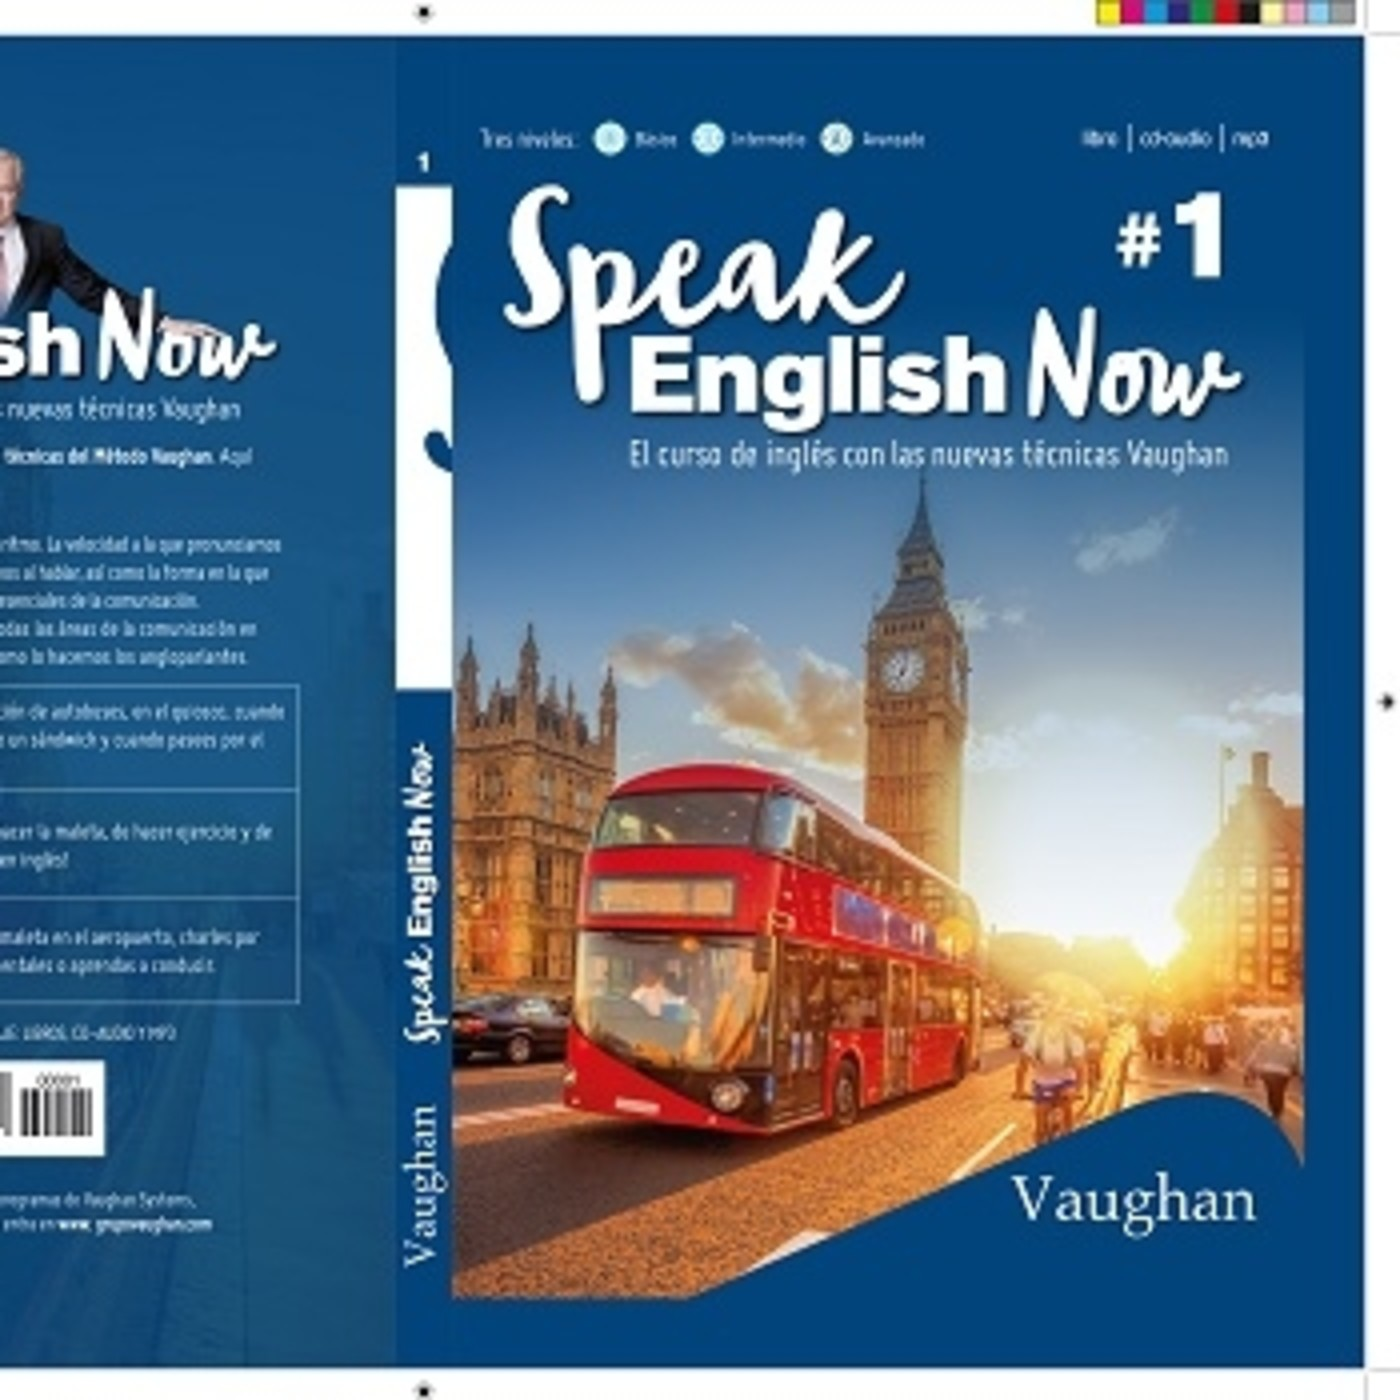 Vaughan Libros Speak English Now By Vaughan Libro 1 In Speak English Now